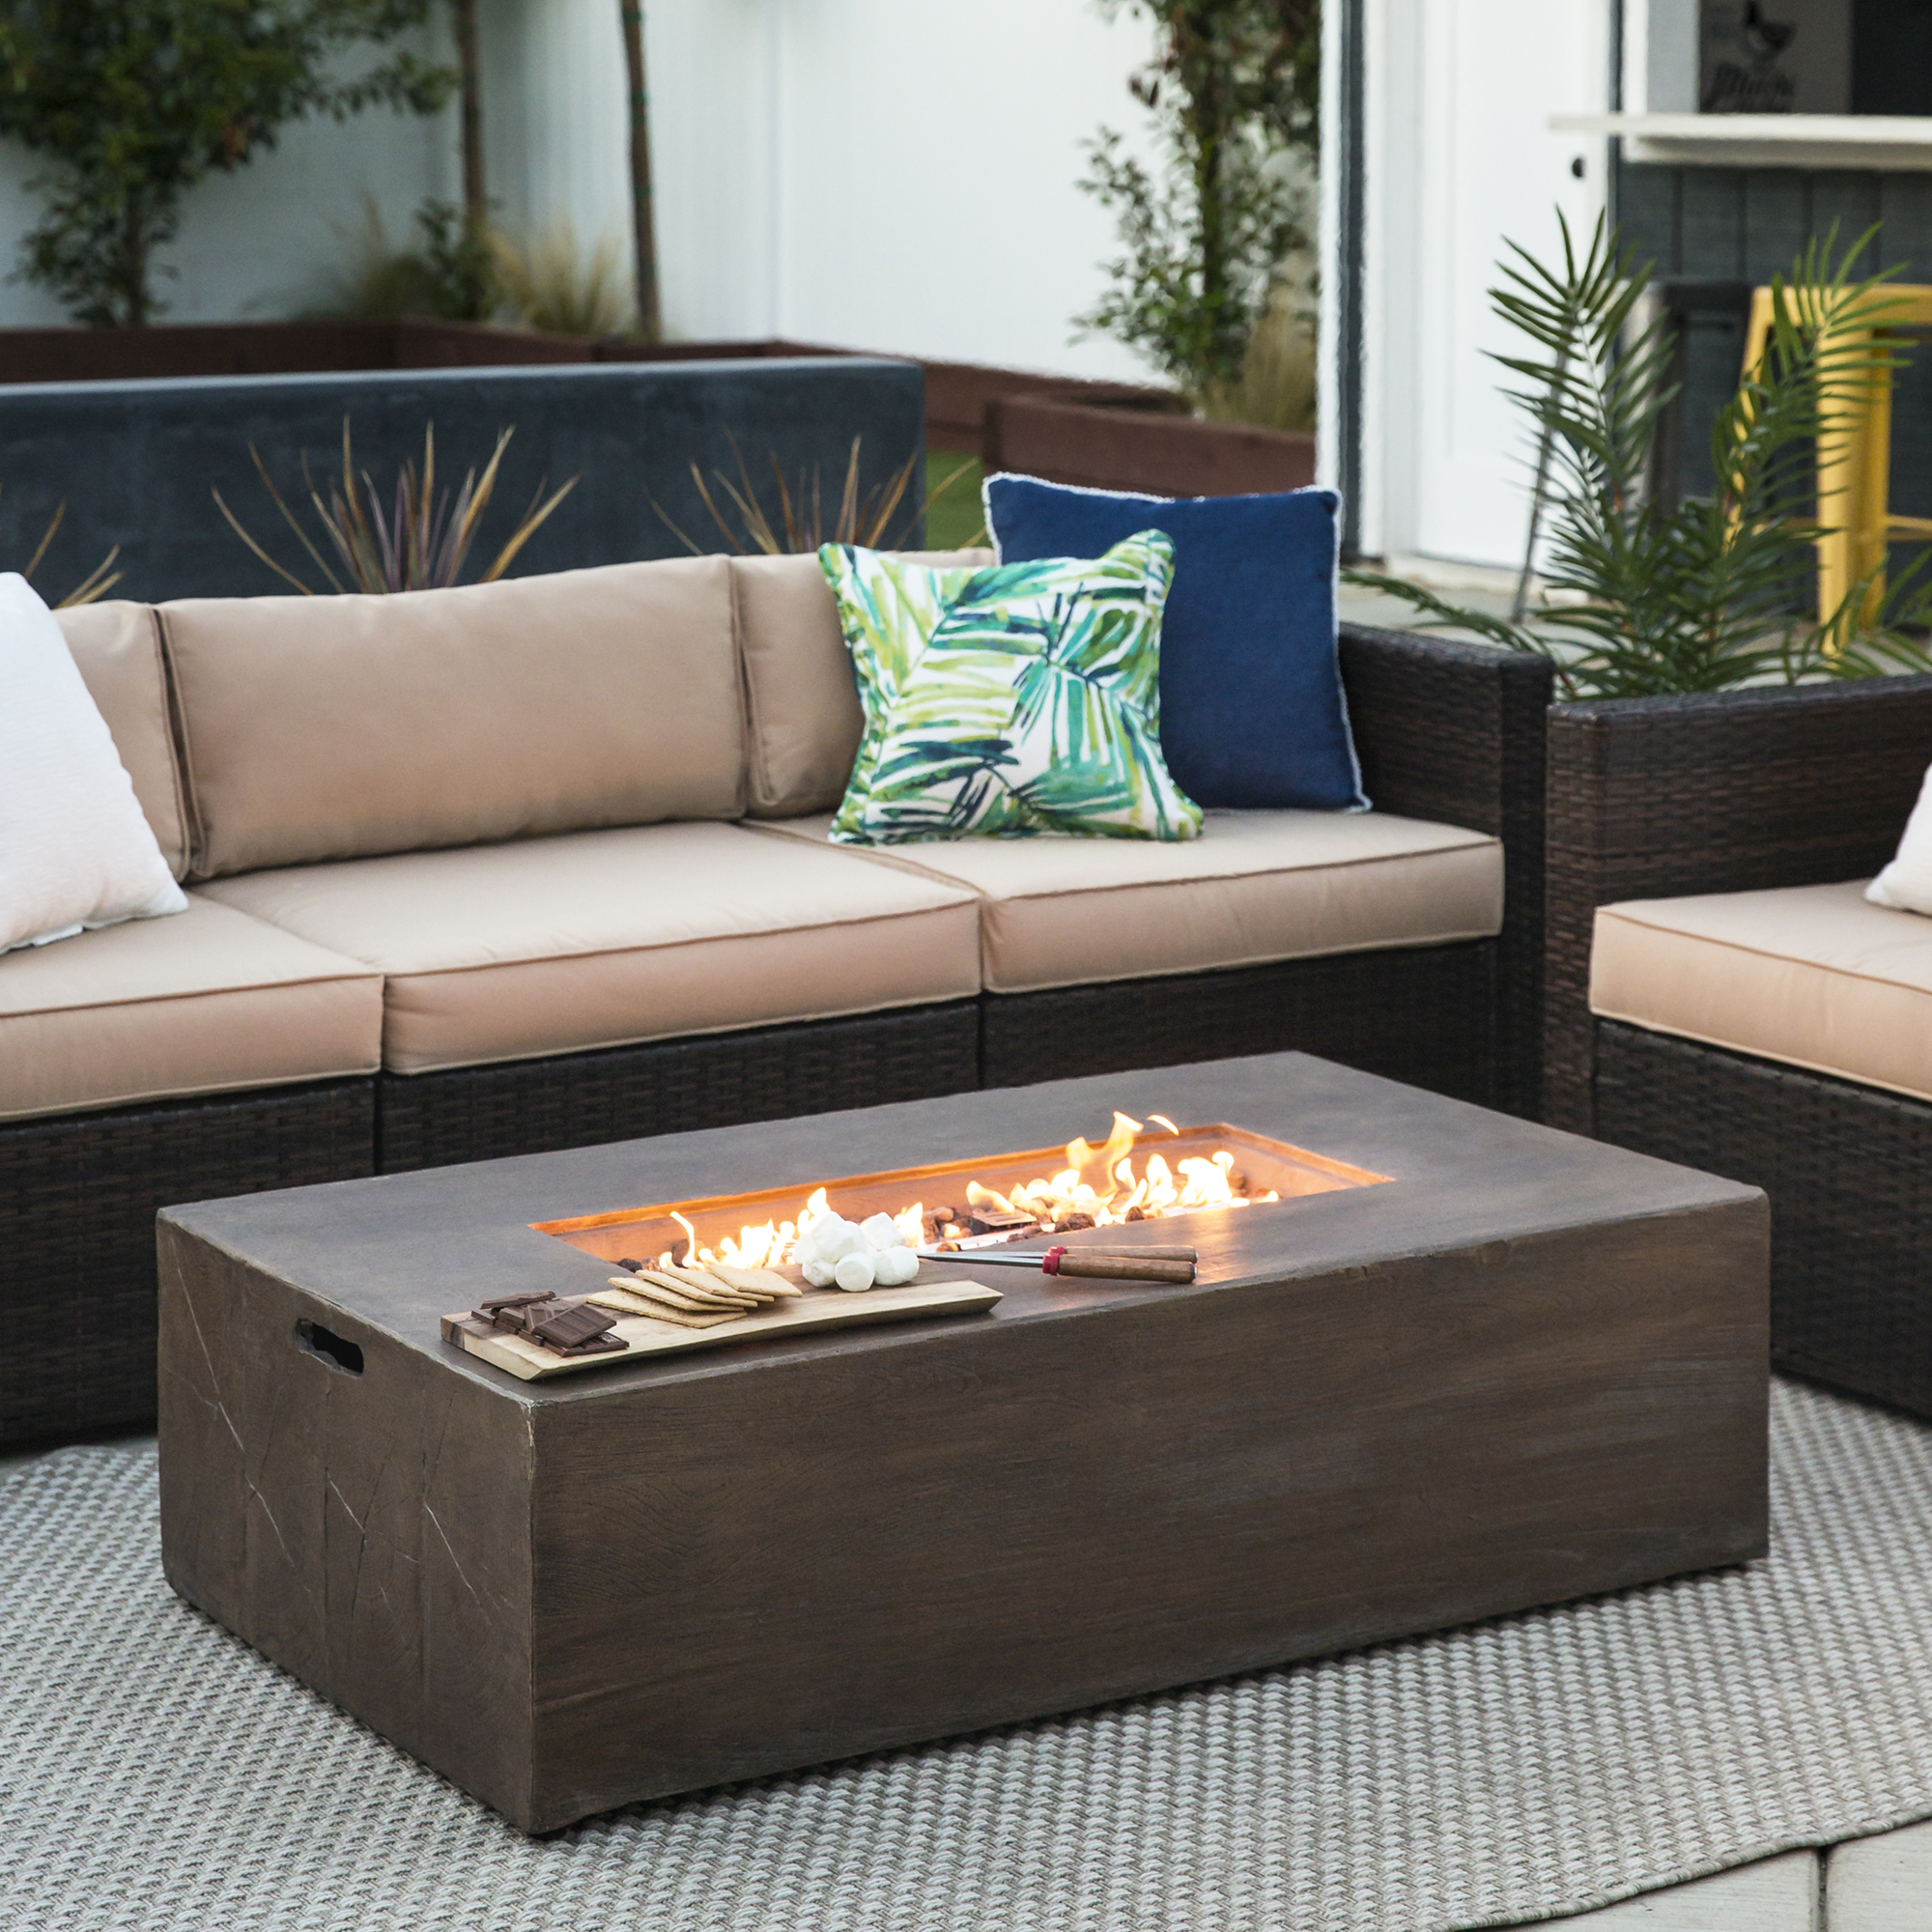 Best Choice Products 48in 50,000 BTU Outdoor Rectangular Modern Wood Finish Propane... by Best Choice Products